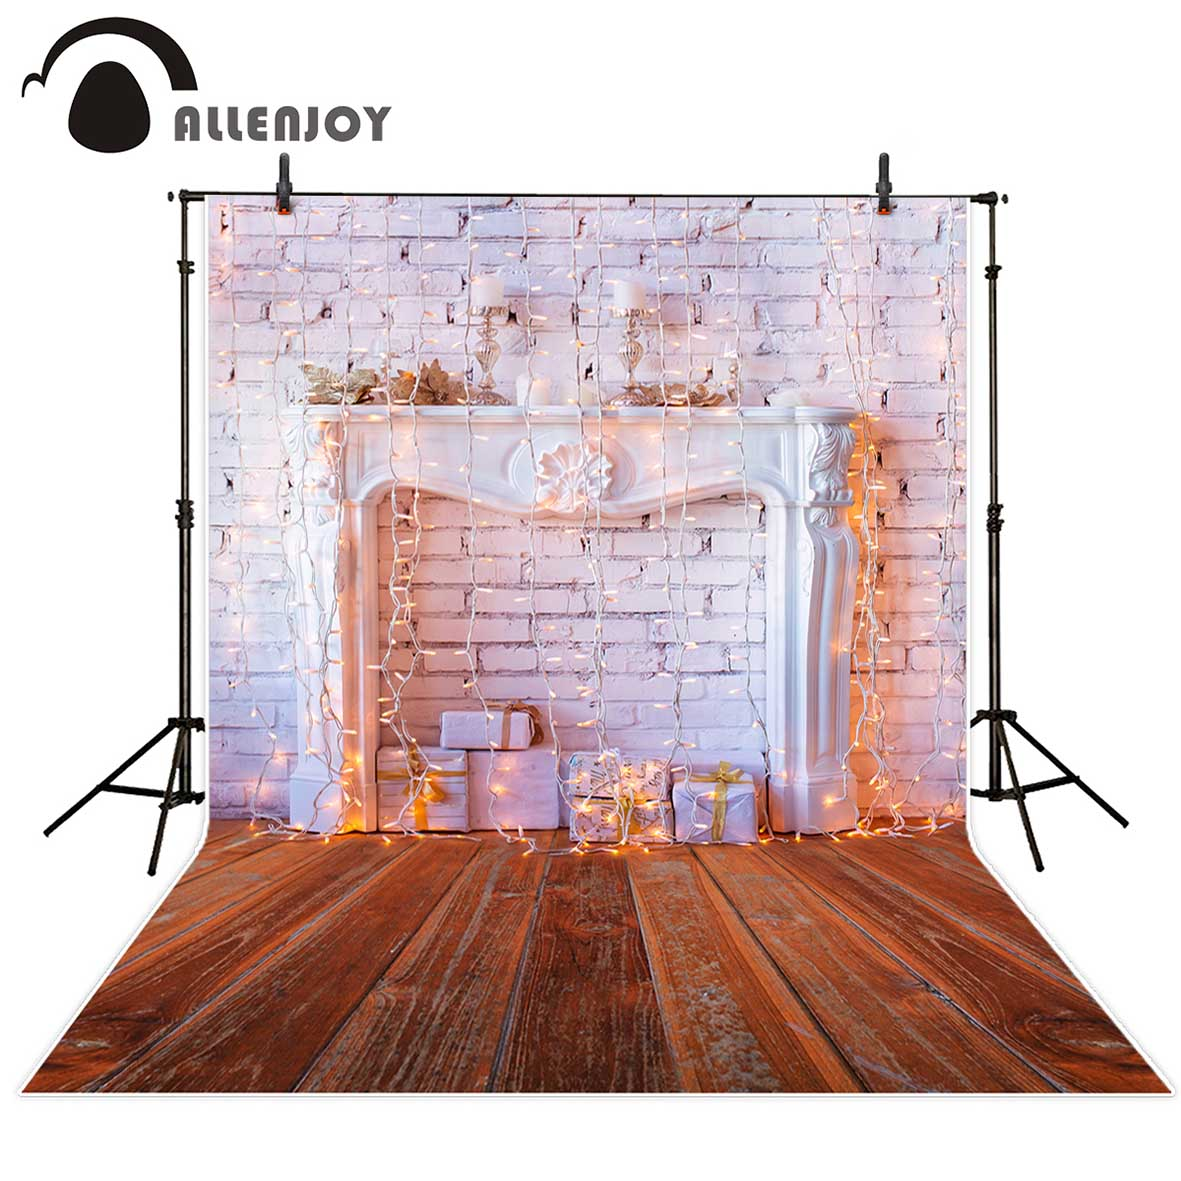 Allenjoy christmas photography backdrops Christmas background gifts white brick wall wooden floor bulbs table for baby for kids free shipping 3 pp eyeliner liquid empty pipe pointed thin liquid eyeliner colour makeup tools lfrosted silver